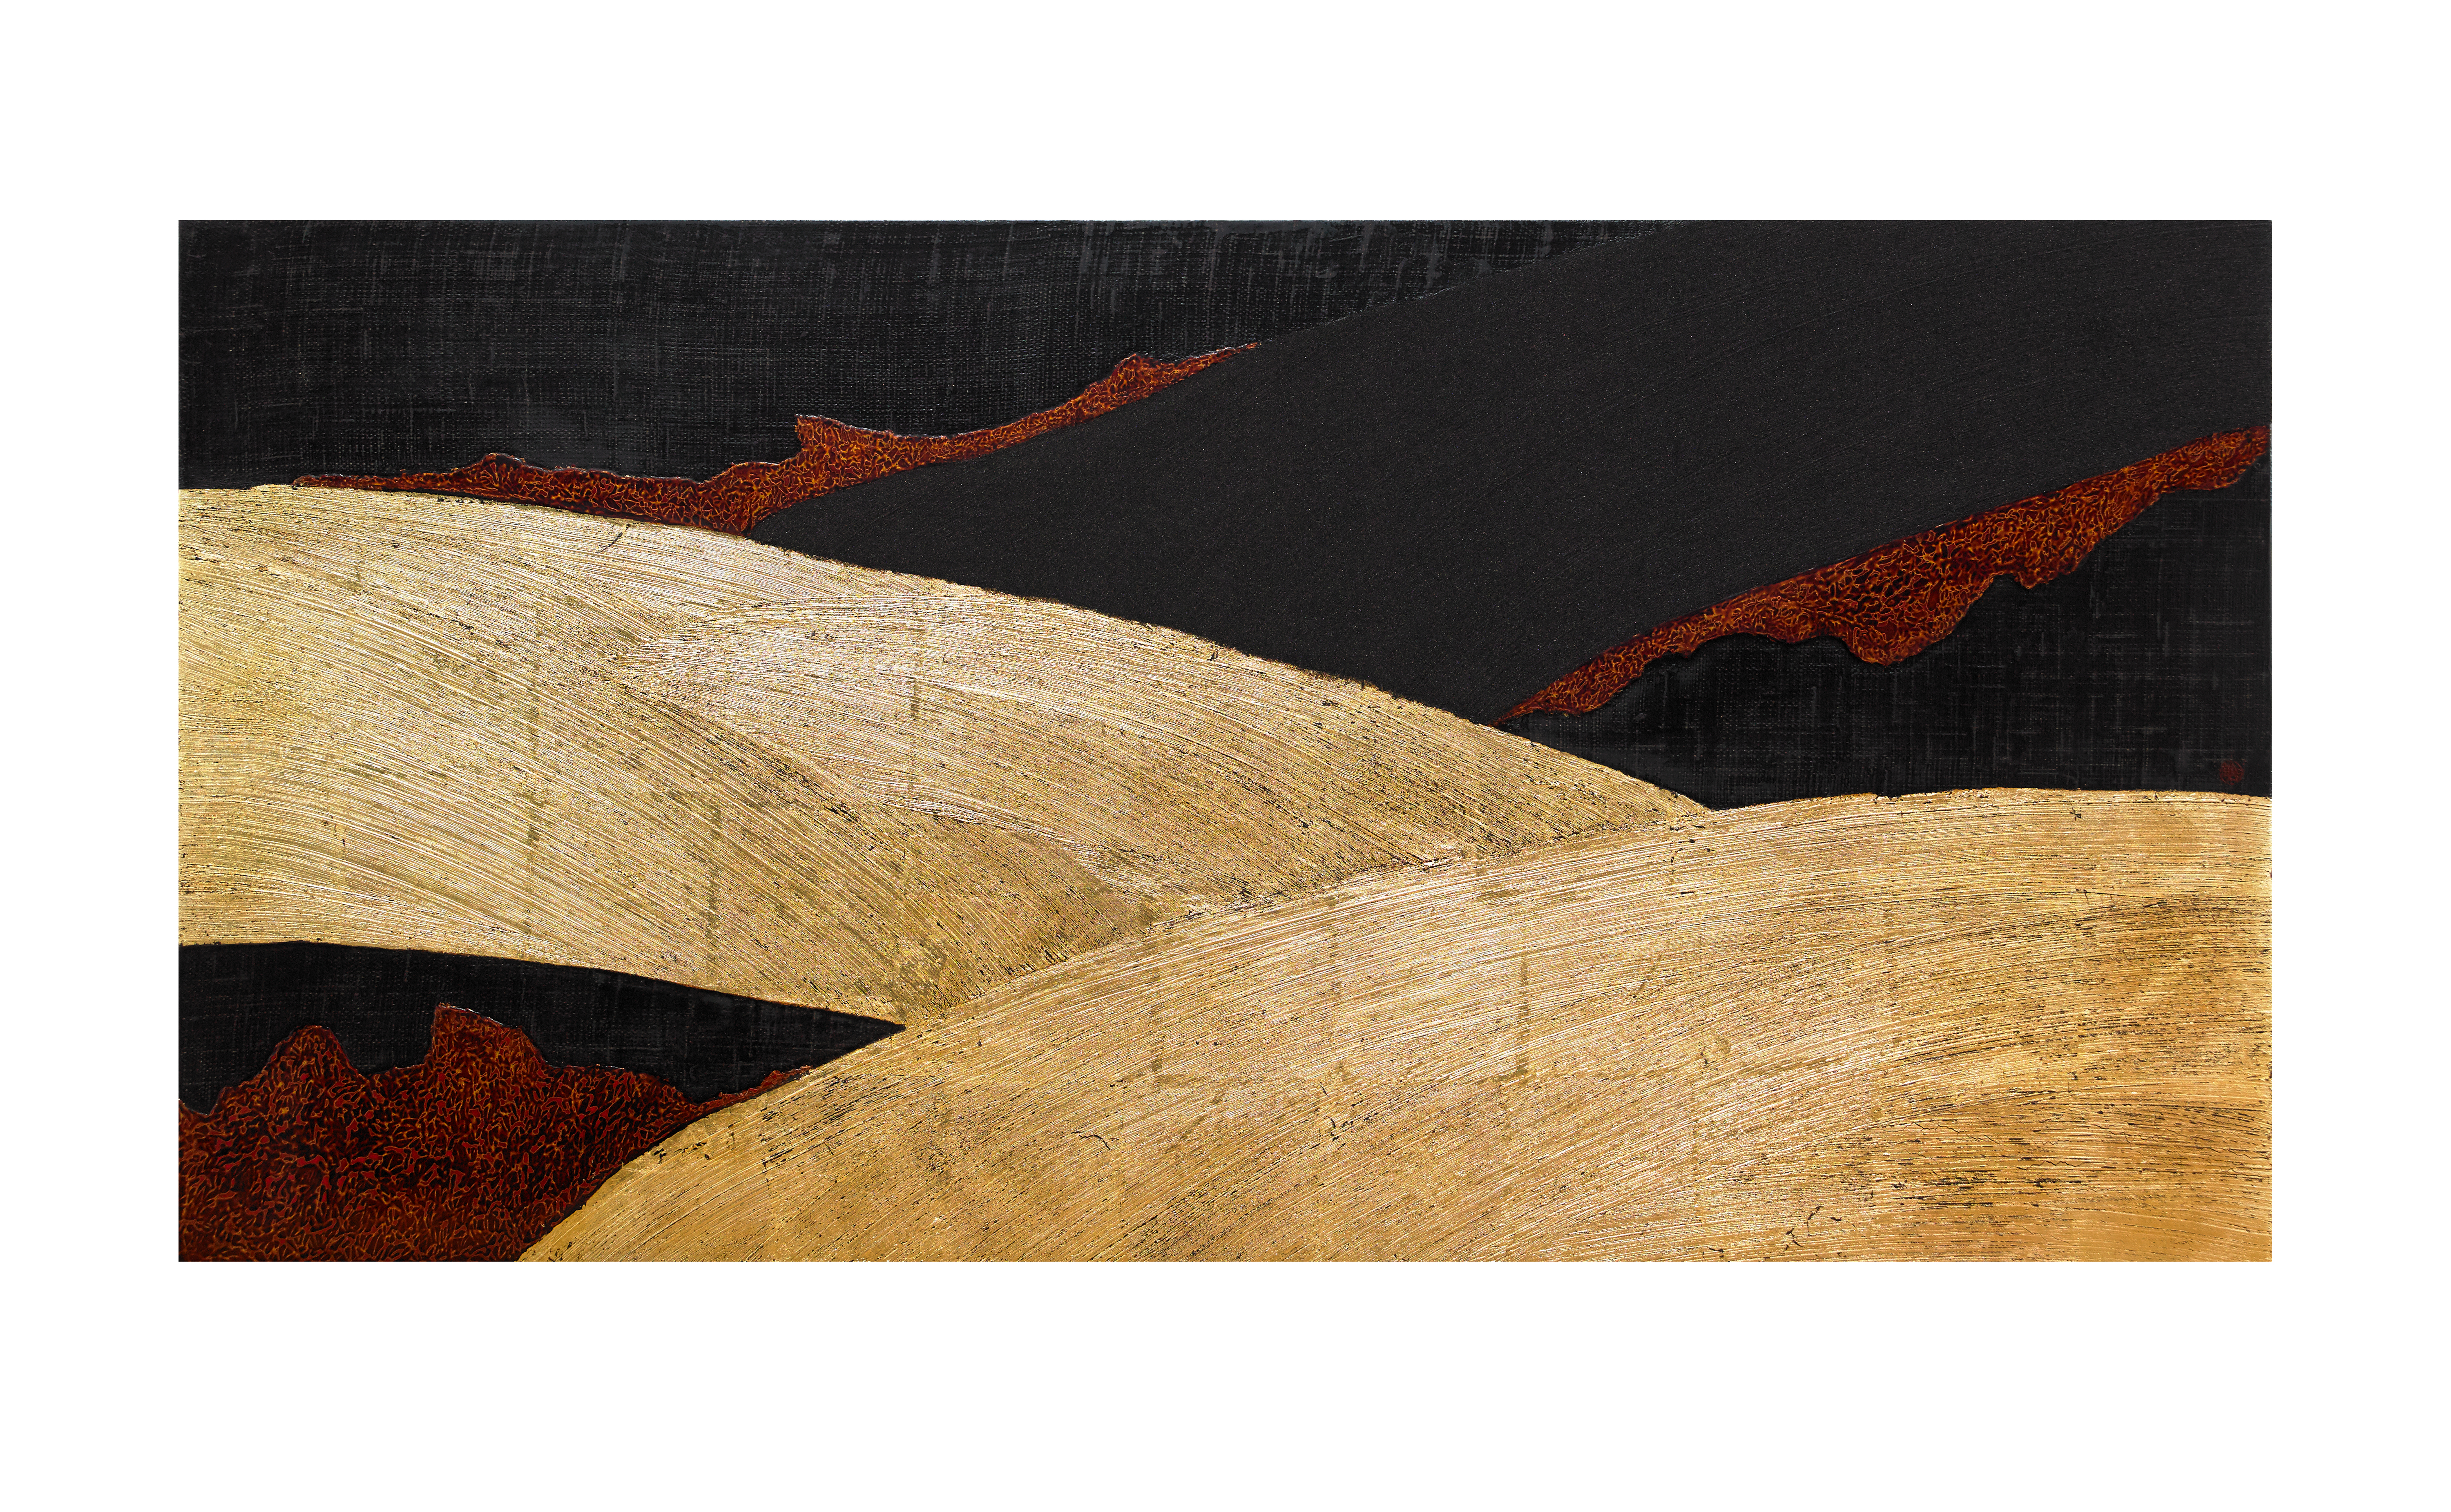 Flow _9_50x100cm_natural lacquer on wooden panel, gold leaf_2018